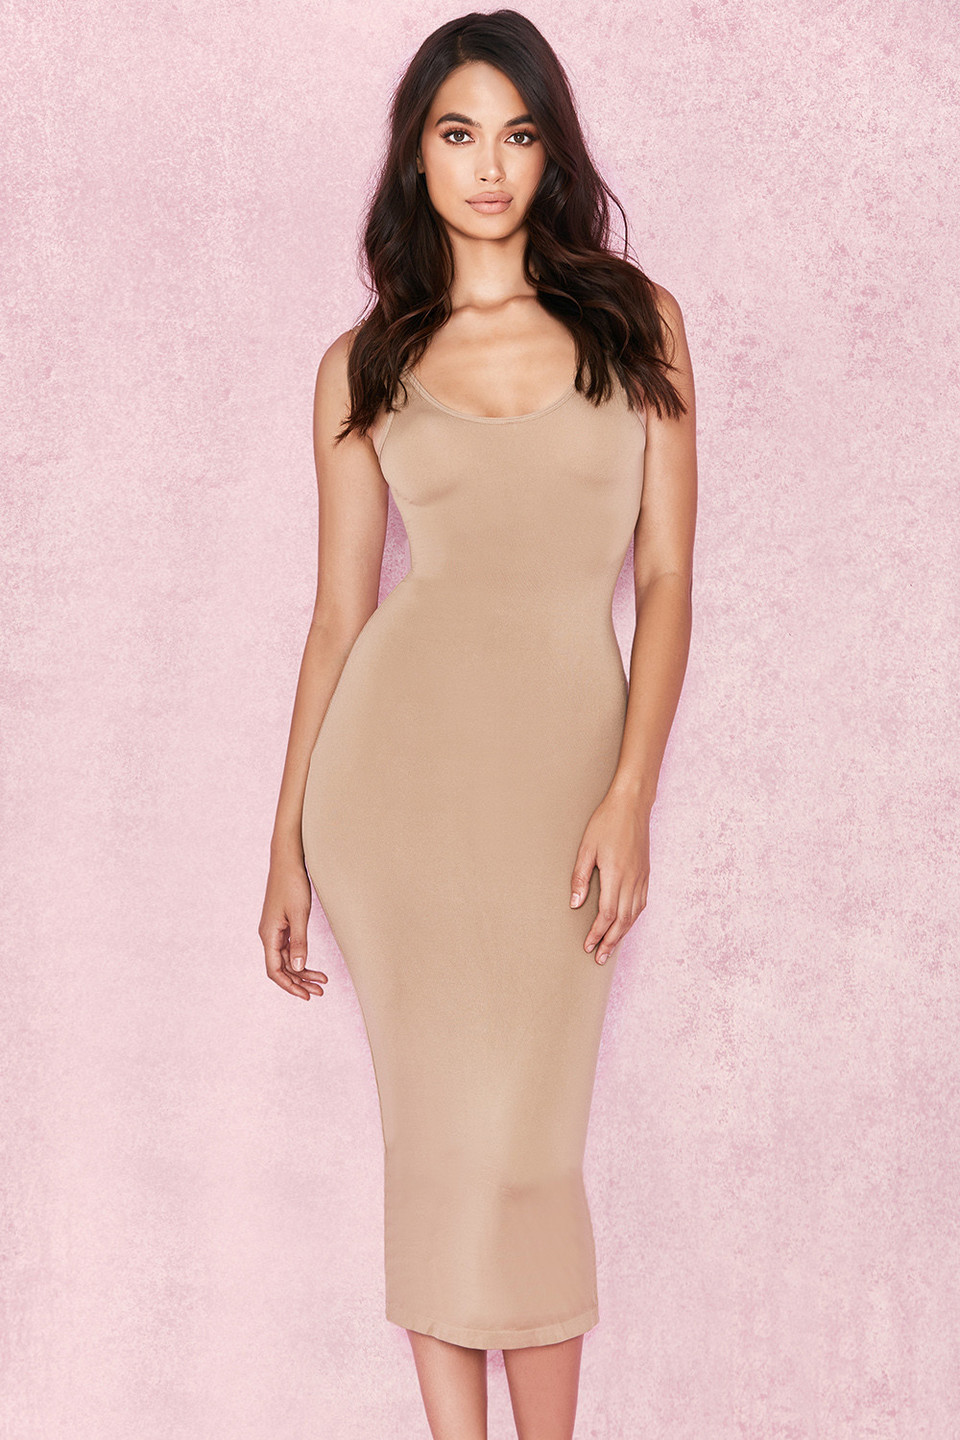 Tomlin Tan Midi Length Vest Dress